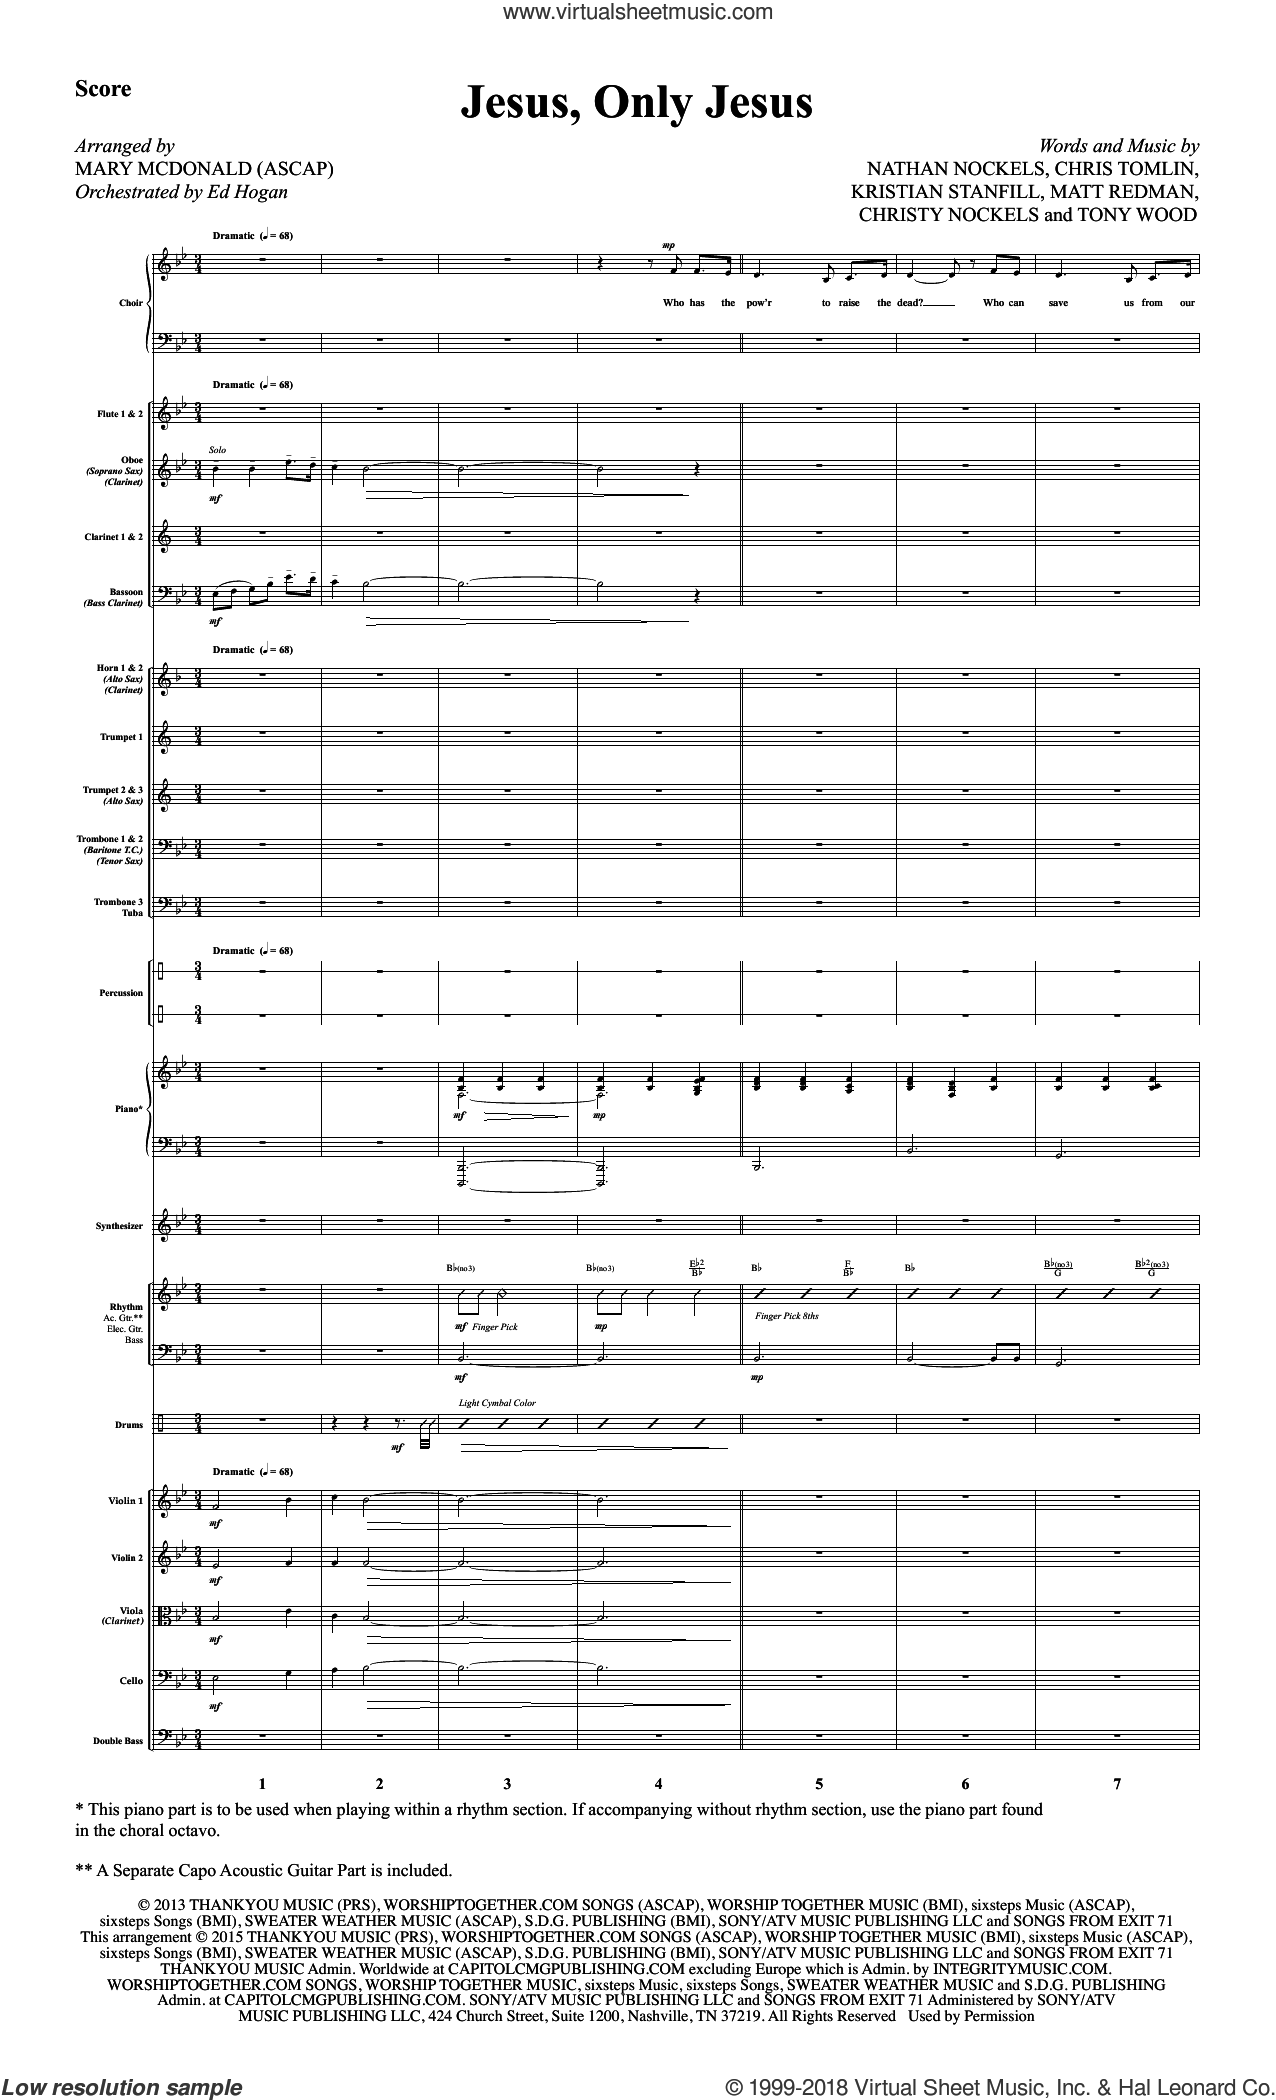 Jesus, Only Jesus (COMPLETE) sheet music for orchestra/band by Mary McDonald, Chris Tomlin, Christy Nockels, Kristian Stanfill, Matt Redman, Nathan Nockels, Passion and Tony Wood, intermediate skill level